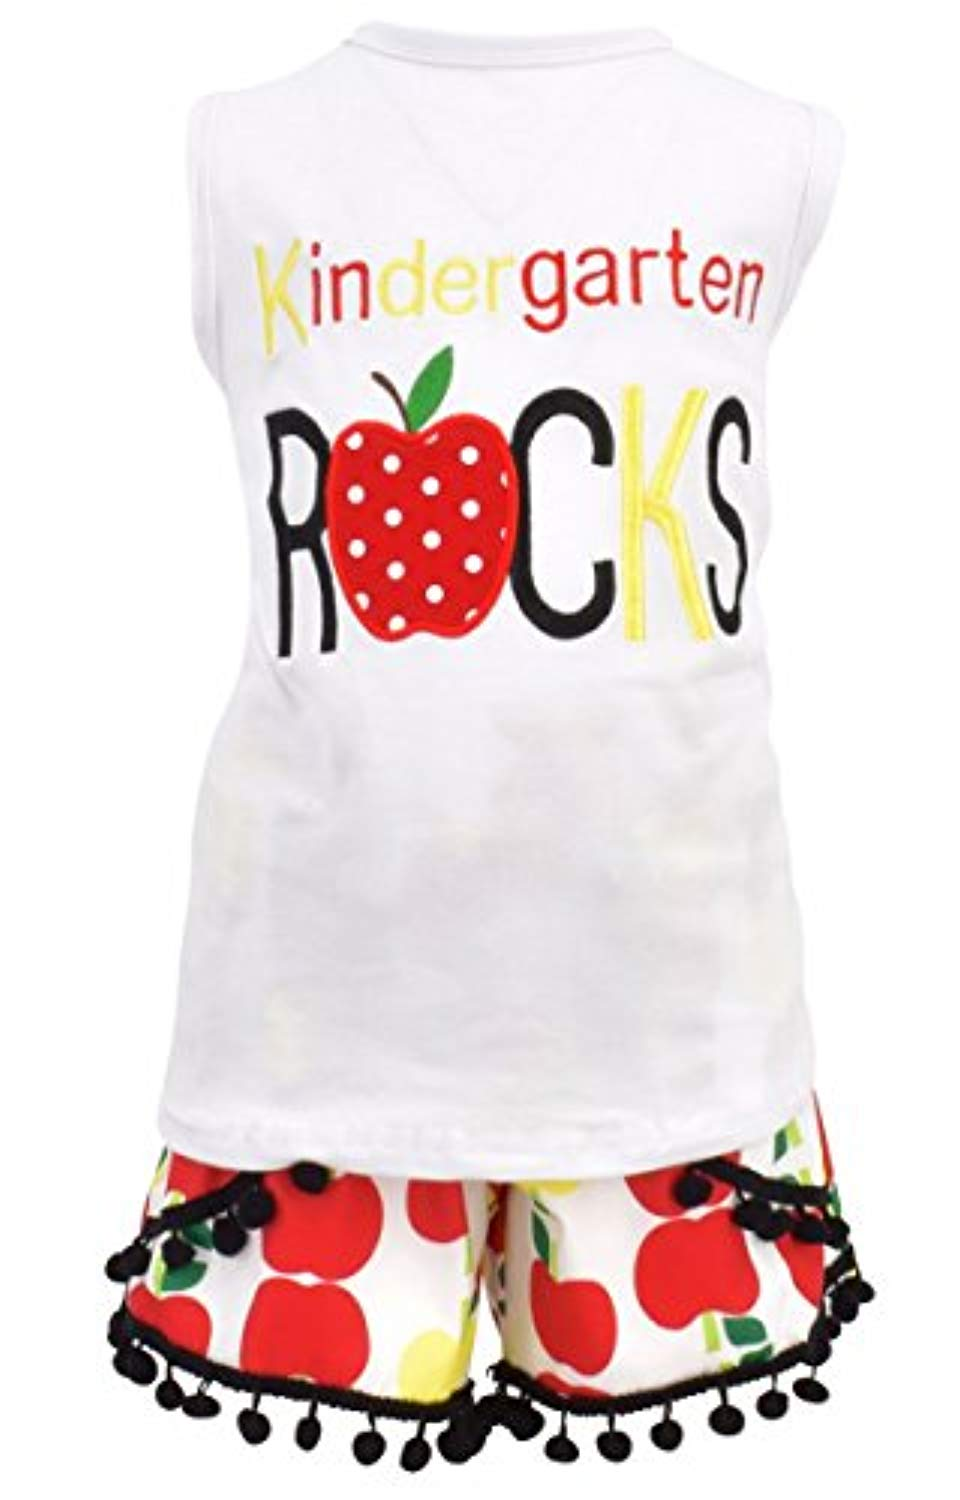 Girls Kindergarten Rocks School Outfit